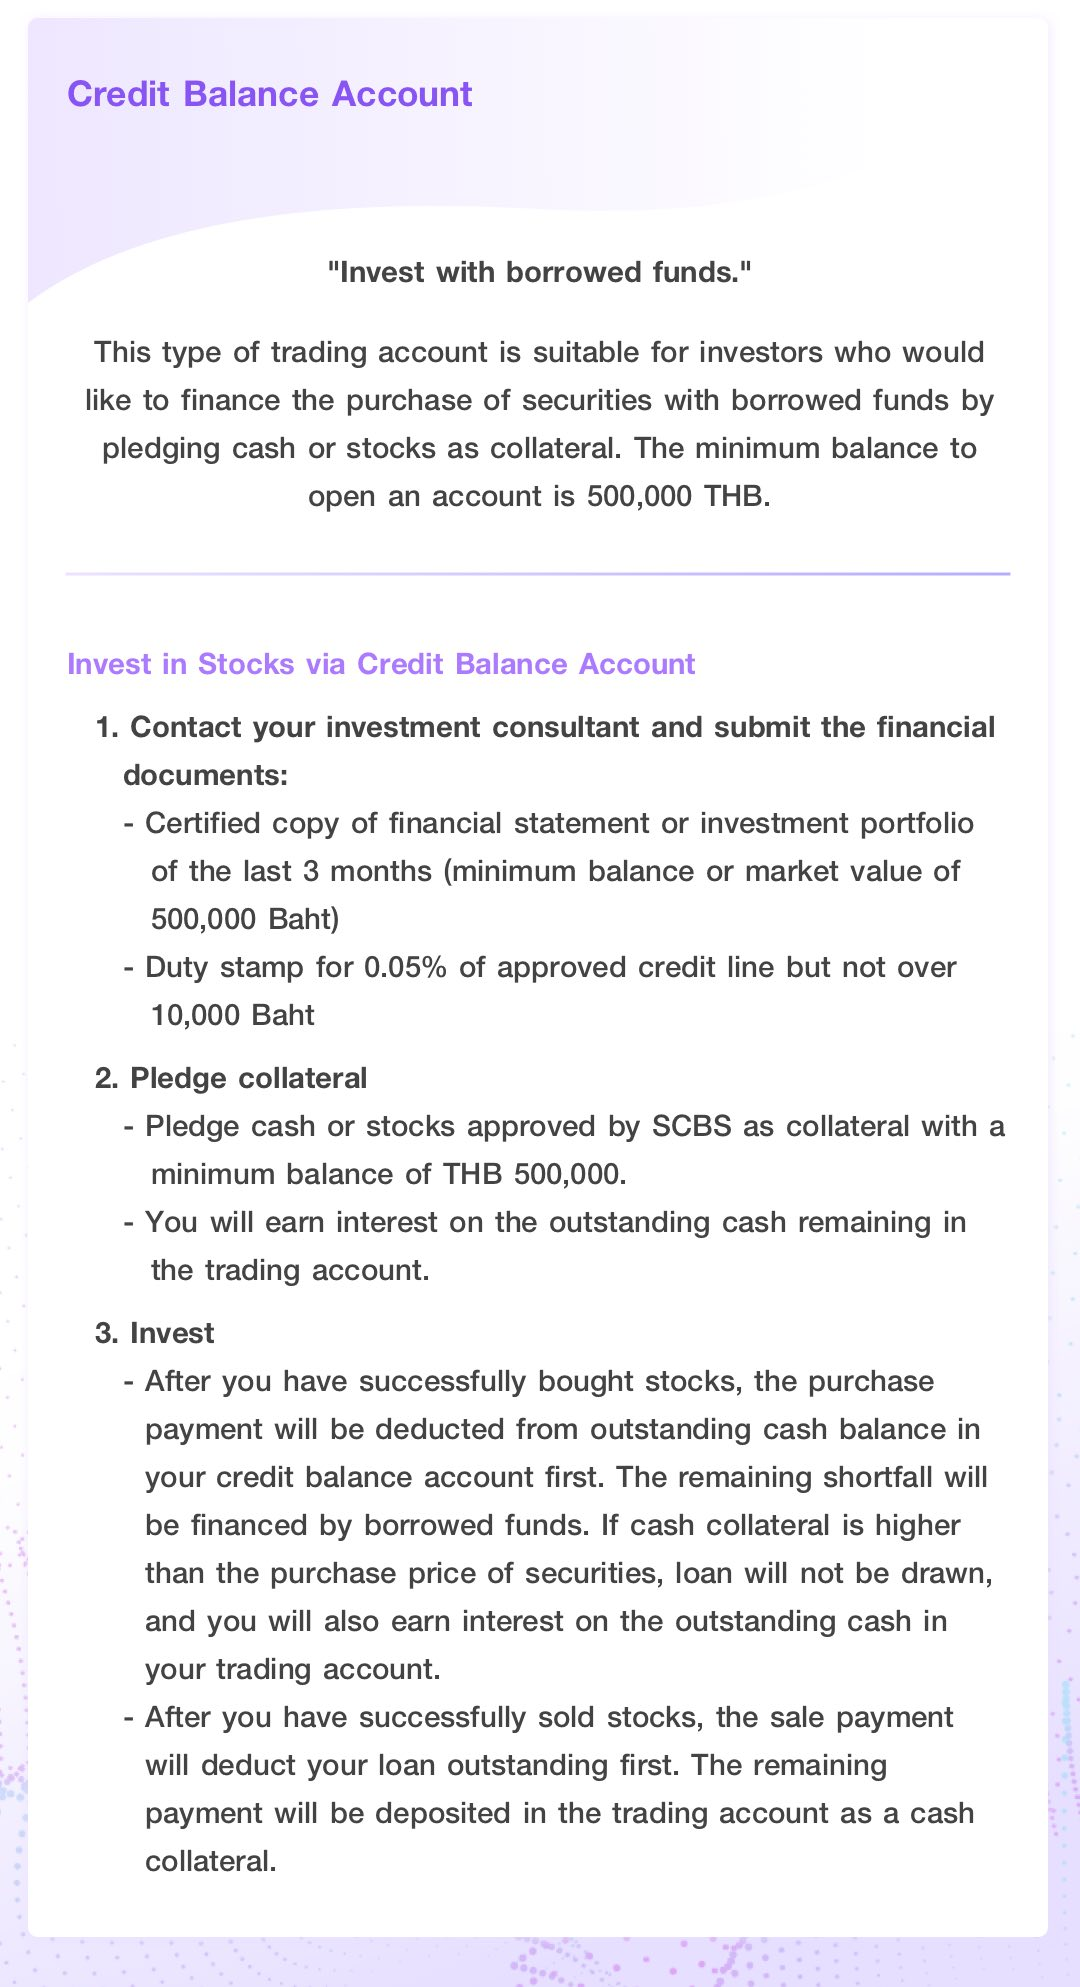 Credit Balance Account. Invest with borrowed funds. This type of trading account is suitable for investors who would like to finance the purchase of securities with borrowed funds by pledging cash or stocks as collateral. The minimum balance to open an account is 500,000 THB.